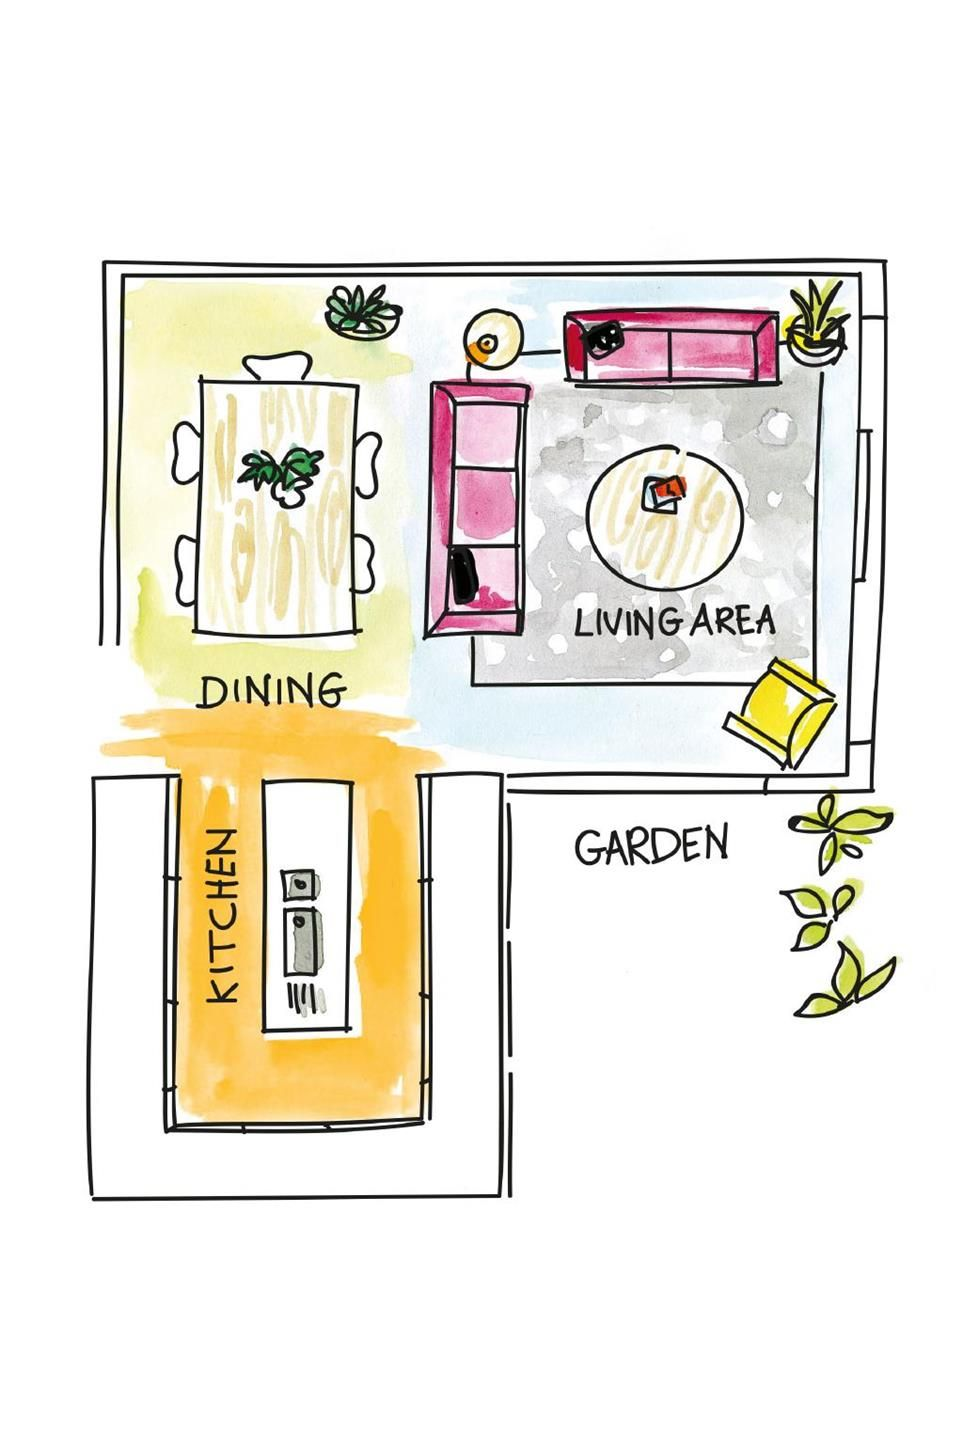 9 open plan layout tips from interiors expert Shannon Vos   Open ...